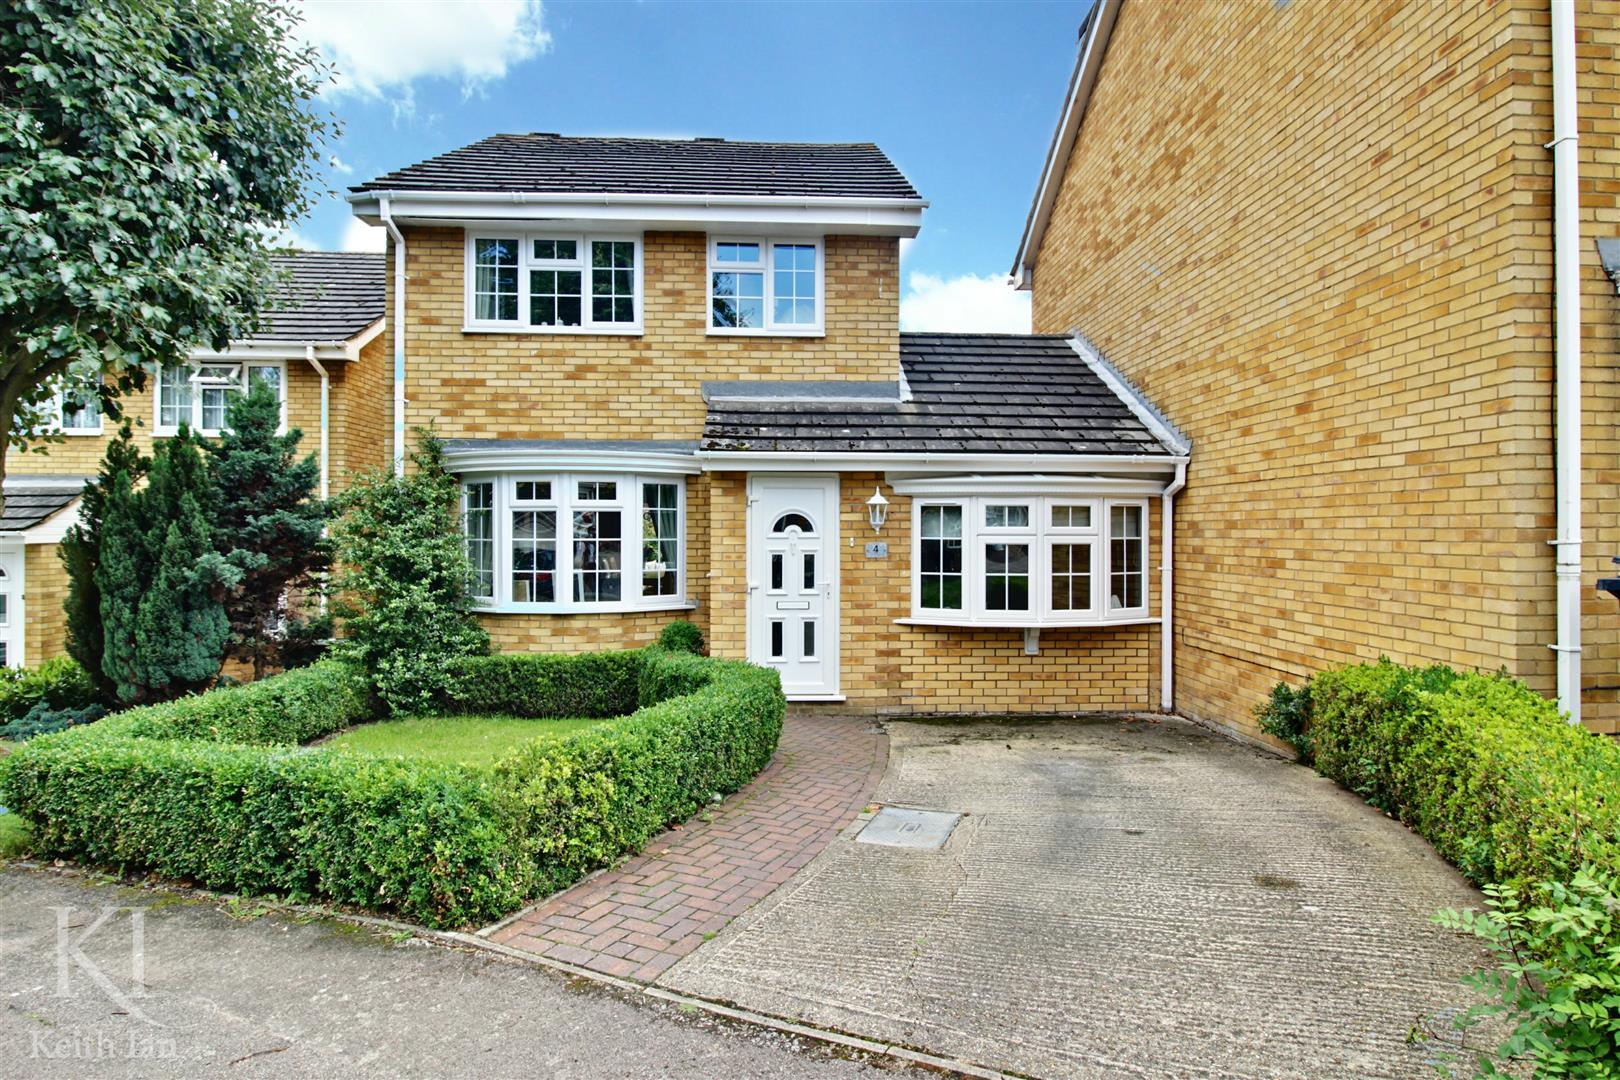 Lower Shott, Cheshunt, - Immaculate 3 Bedroom Detached House